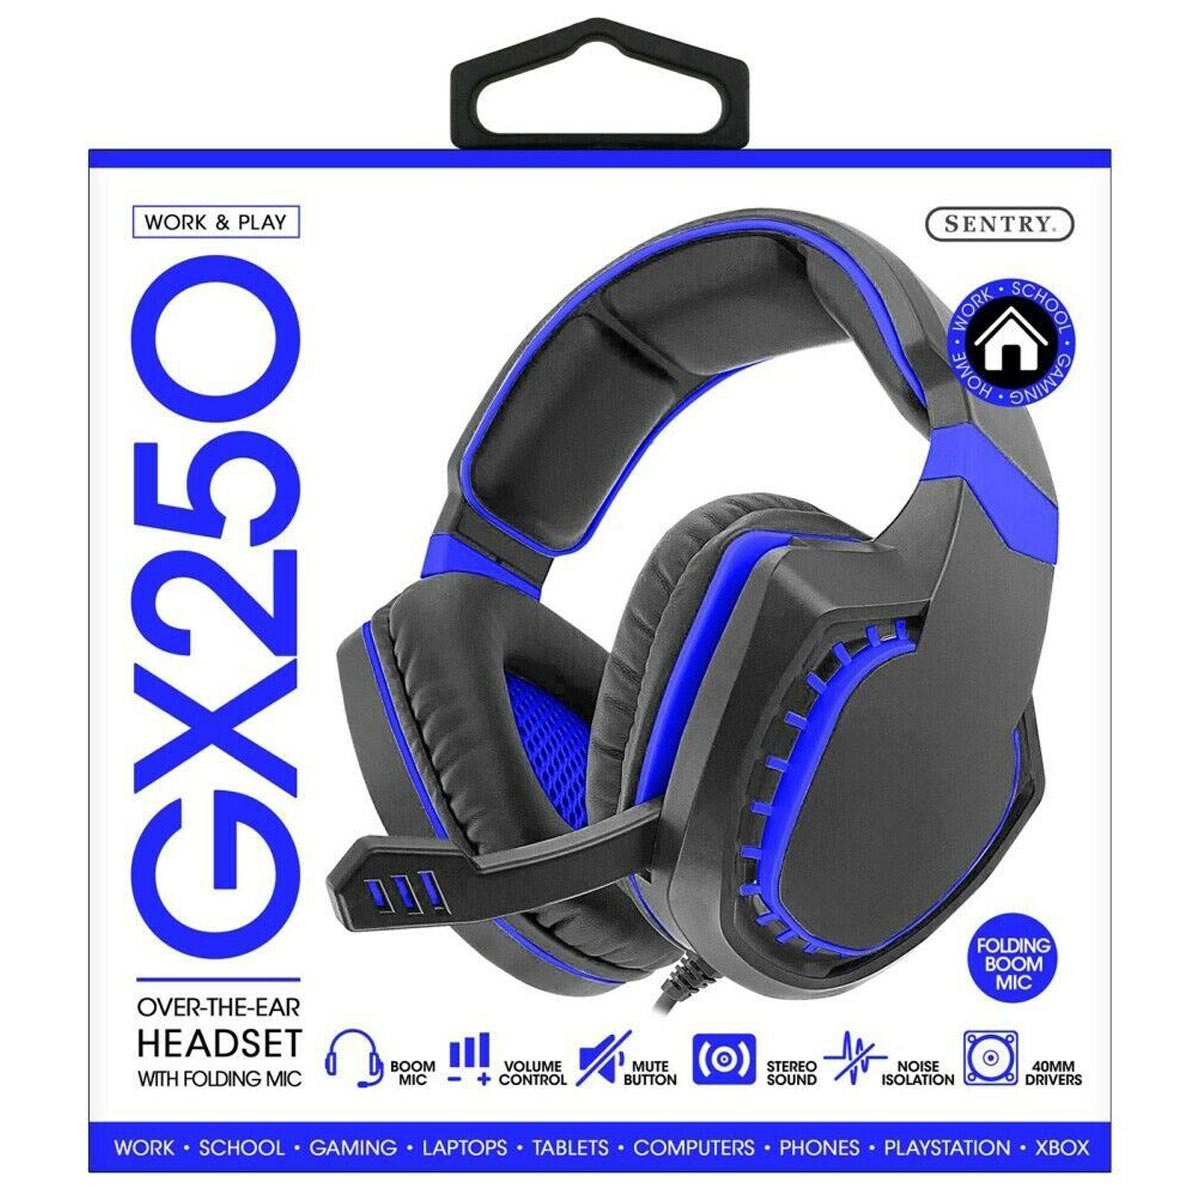 Sentry GX250 Deluxe Over-the-Ear Gaming Headset with Folding Boom Mic, Assorted Colors